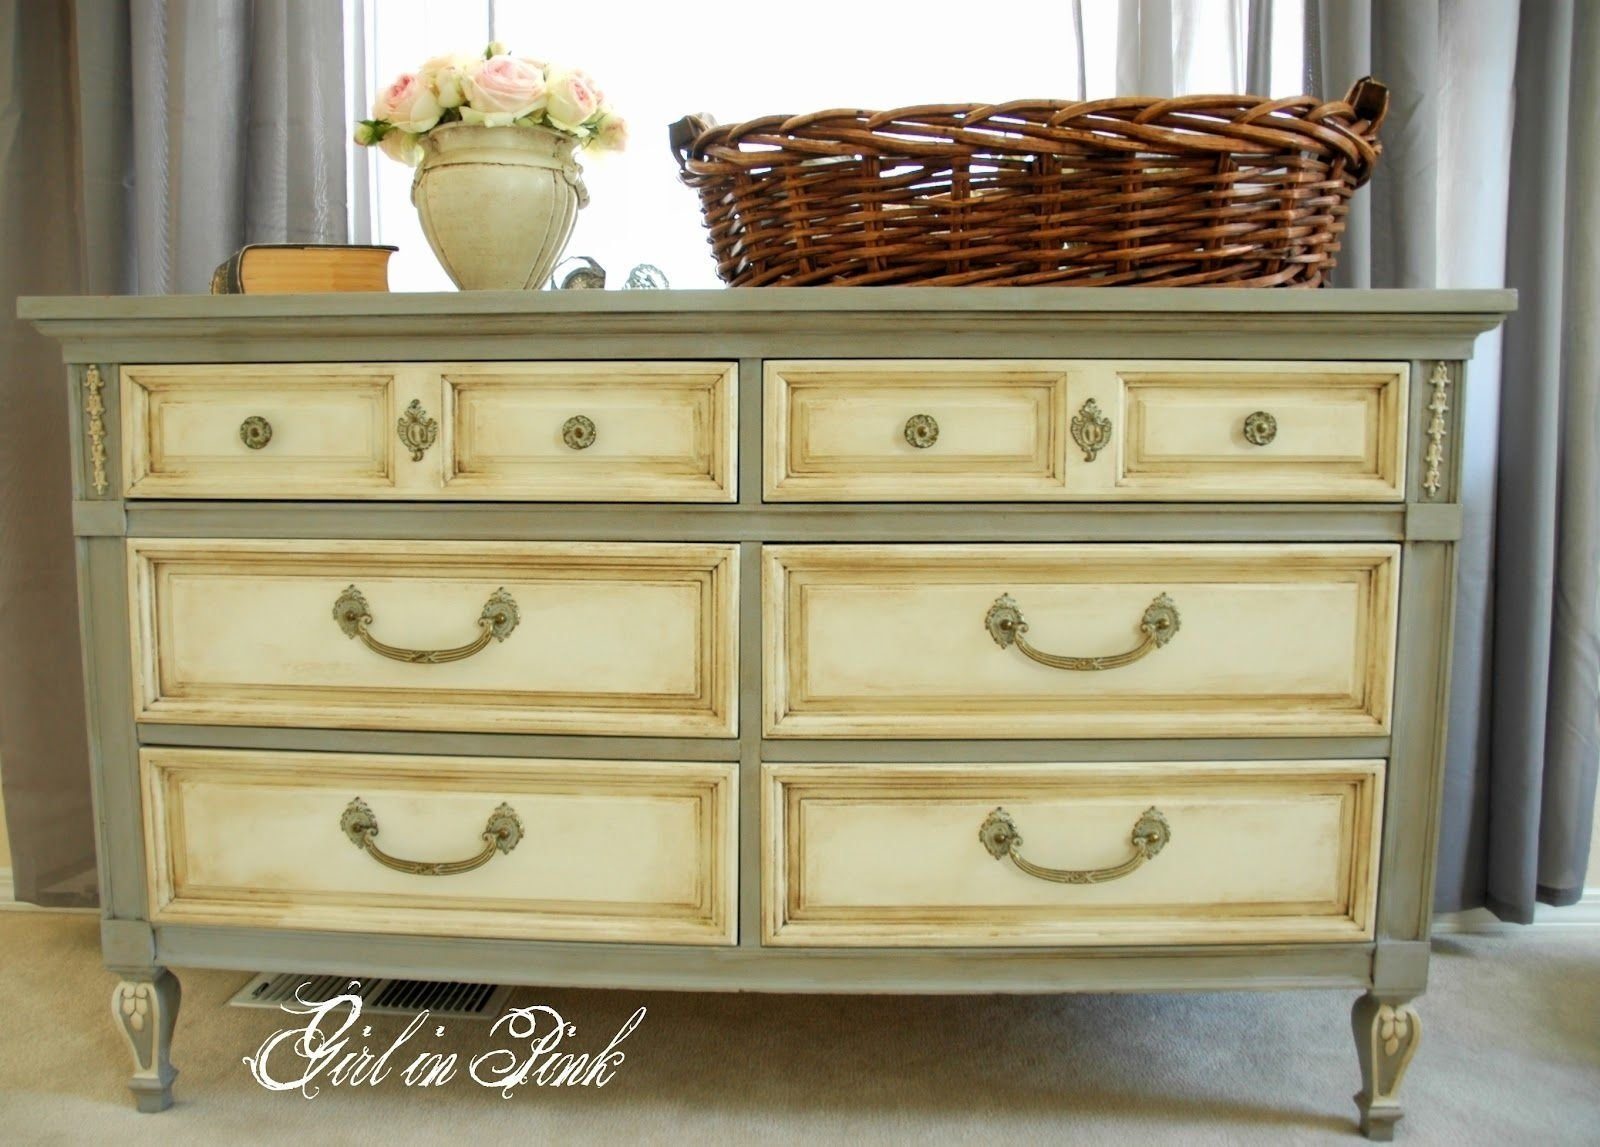 10 Pretty Annie Sloan Painted Furniture Ideas fascinating coffee table painting kitchen cabinets with annie sloan 1 2020